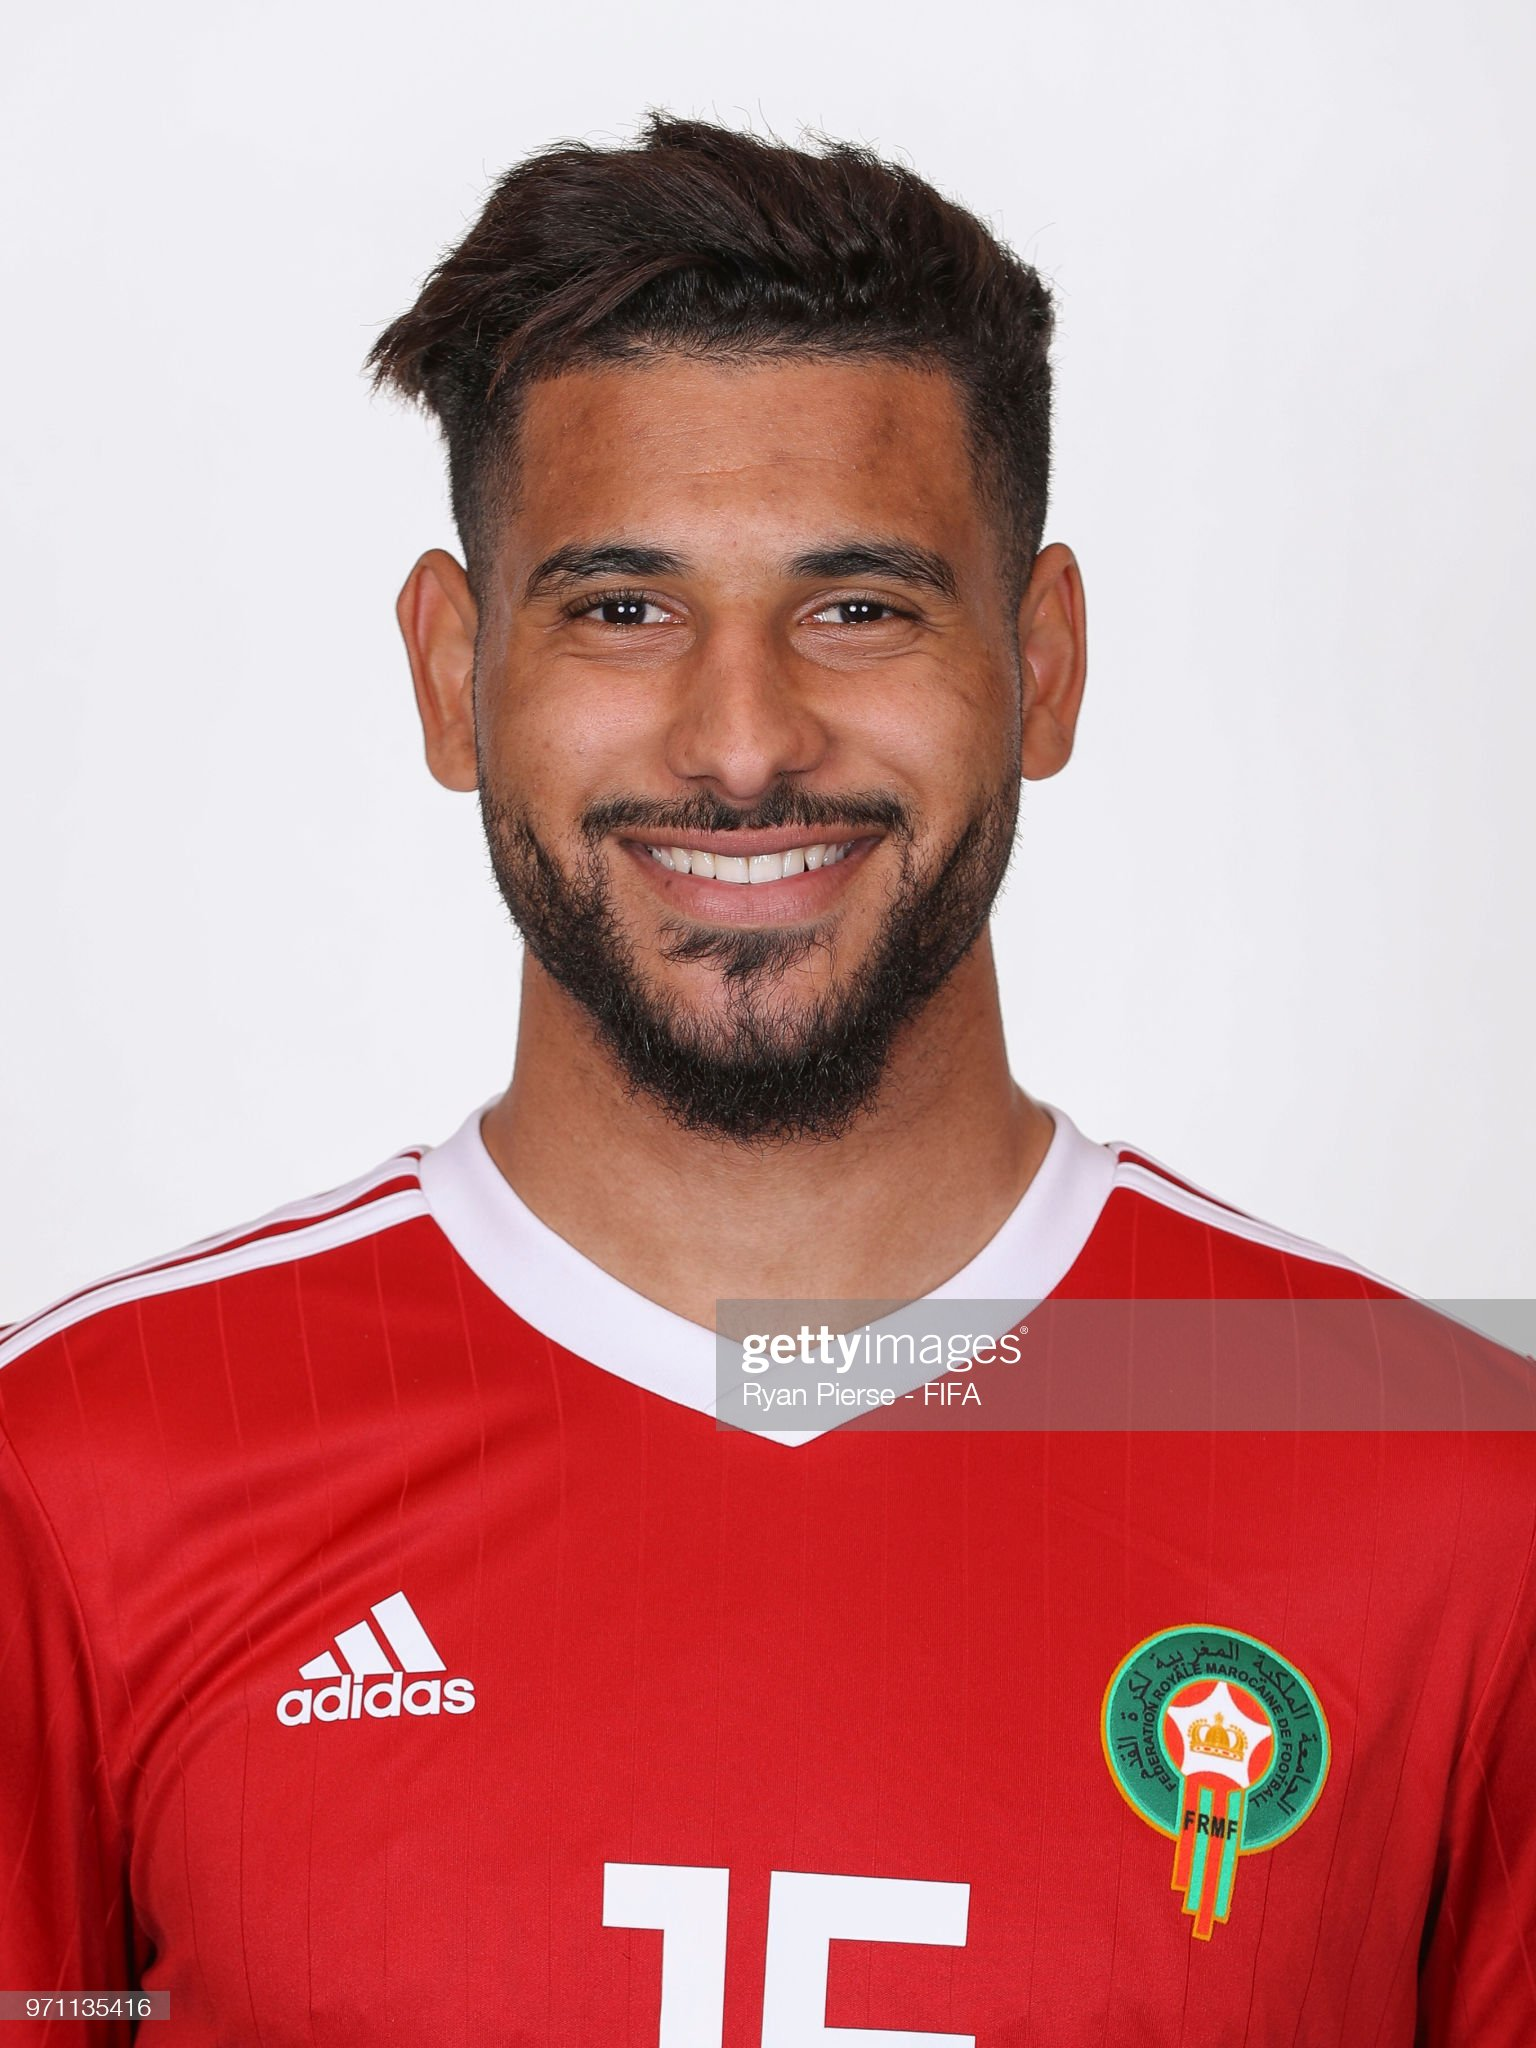 Norteafricanos Youssef-ait-bennasser-of-morocco-poses-during-the-official-fifa-world-picture-id971135416?s=2048x2048